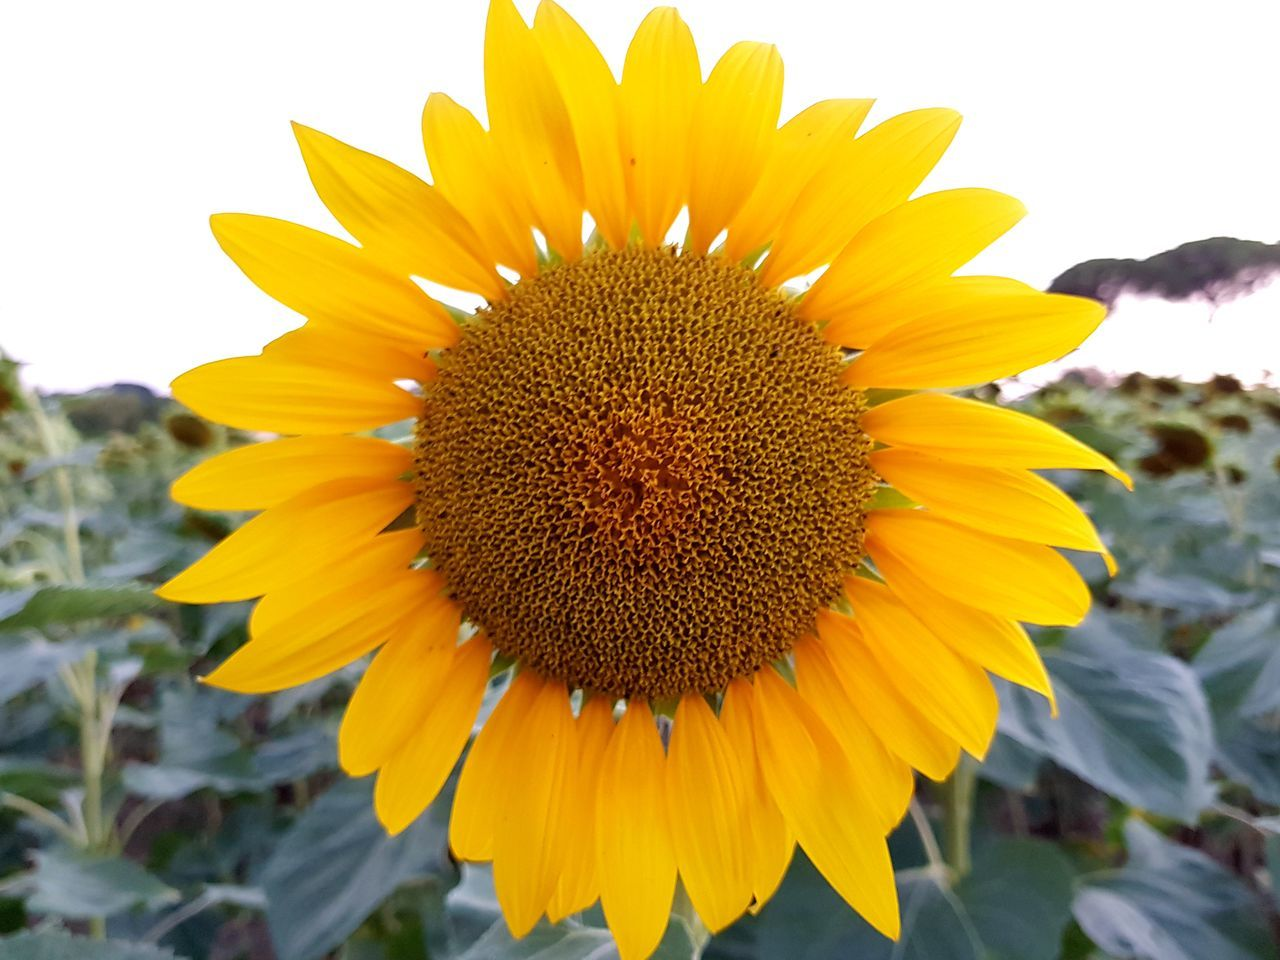 flower, yellow, petal, flower head, freshness, fragility, nature, beauty in nature, pollen, plant, sunflower, growth, close-up, no people, outdoors, day, blooming